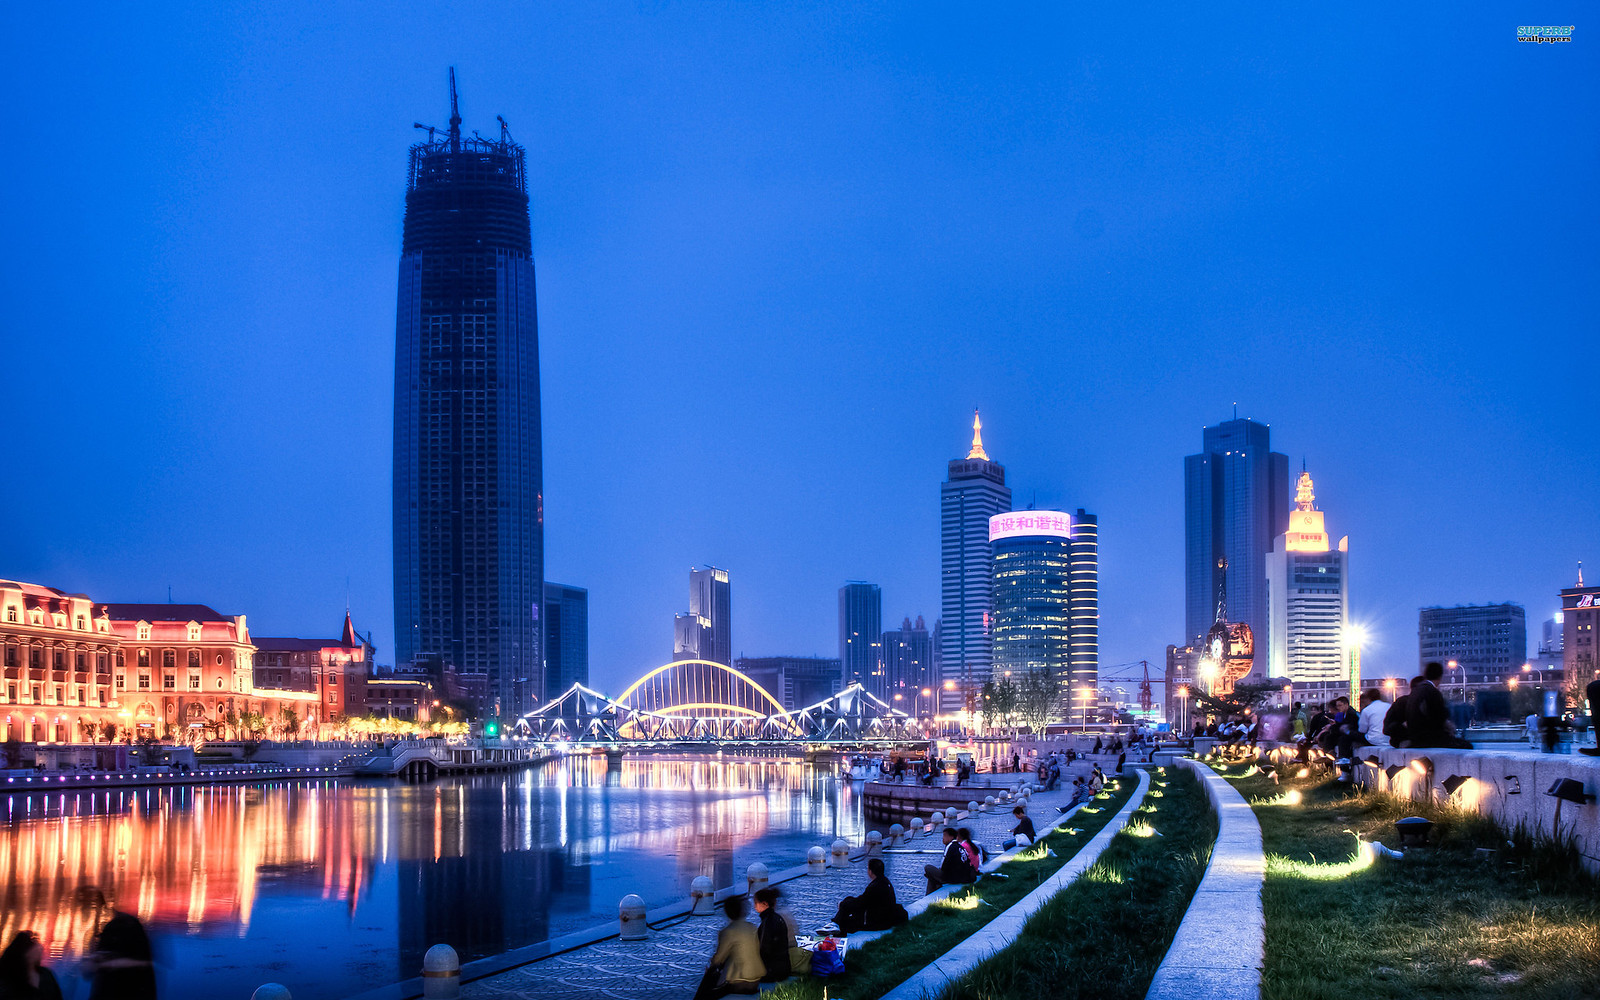 23504268036 5b95a7aff5 h - Asian Games 2018 Indonesia Skyscrapercity